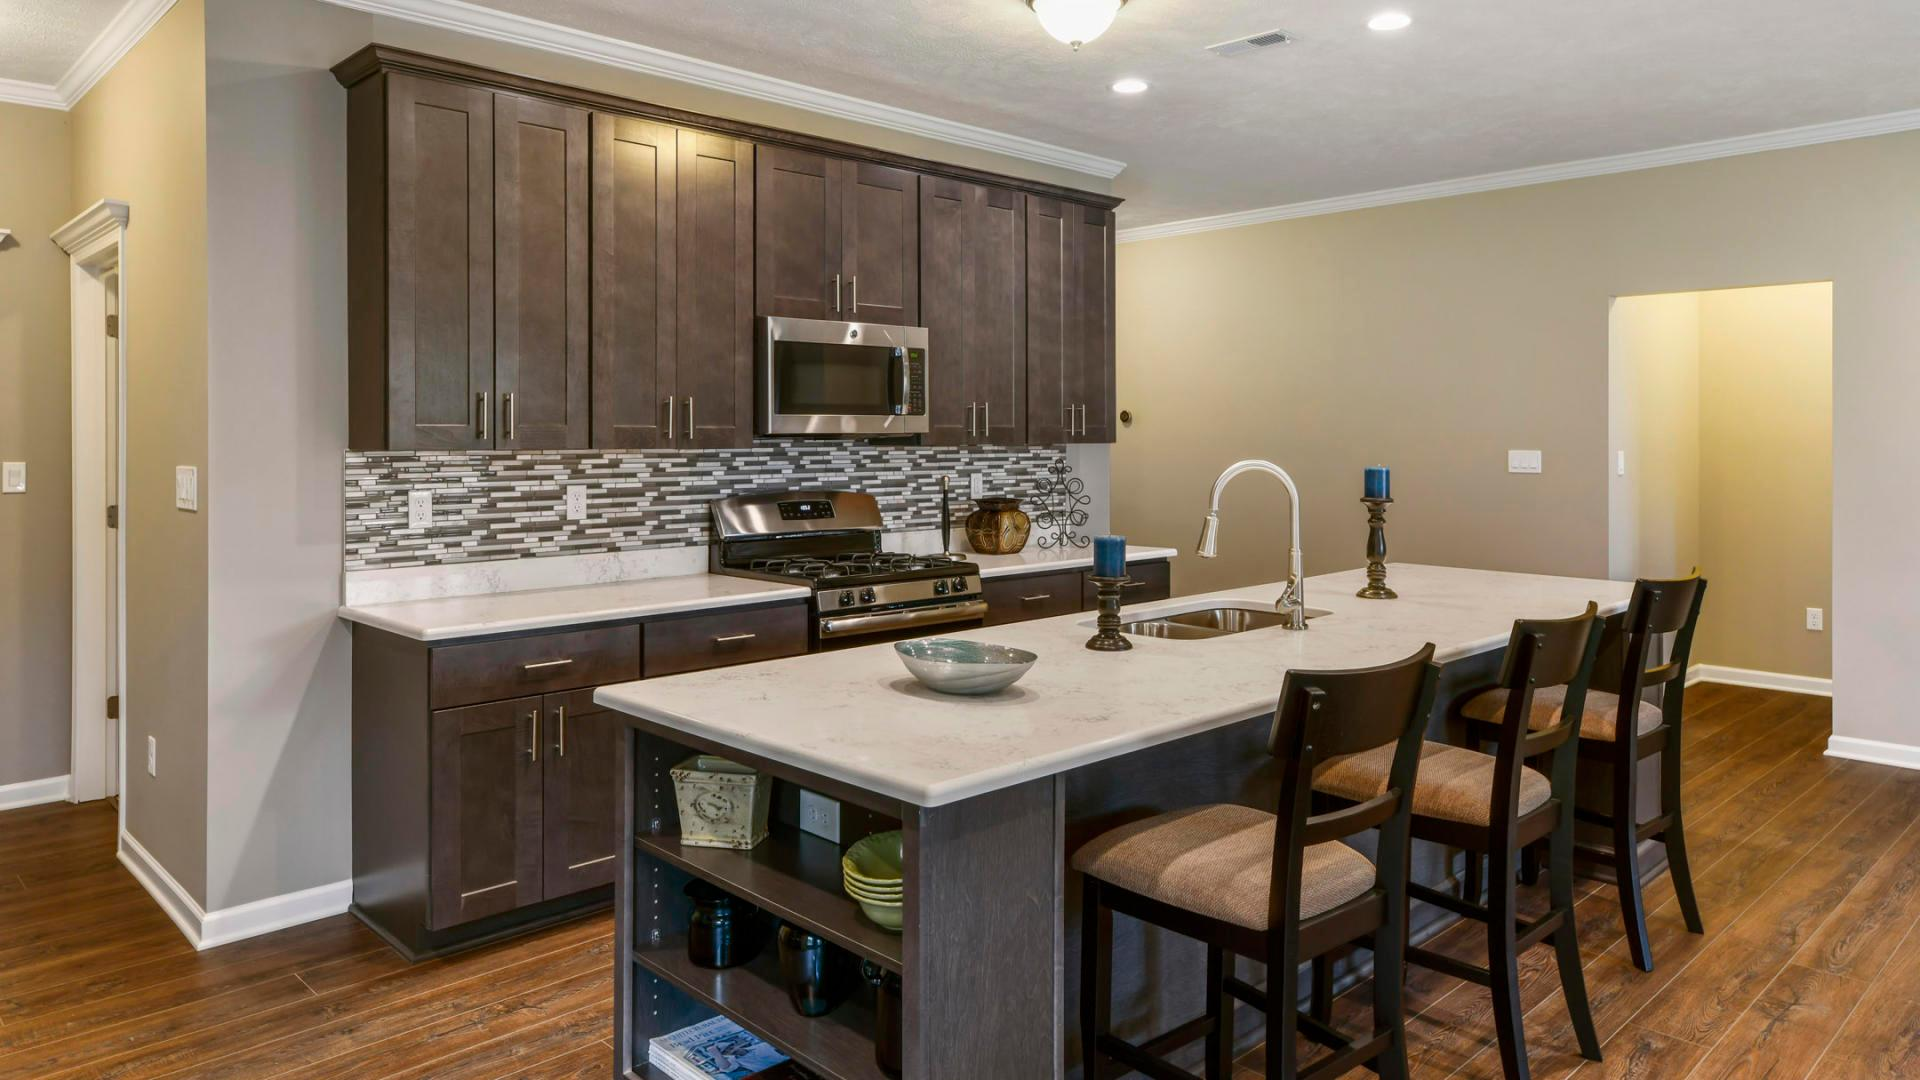 Kitchen featured in the Drexel By Maronda Homes in Cincinnati, OH